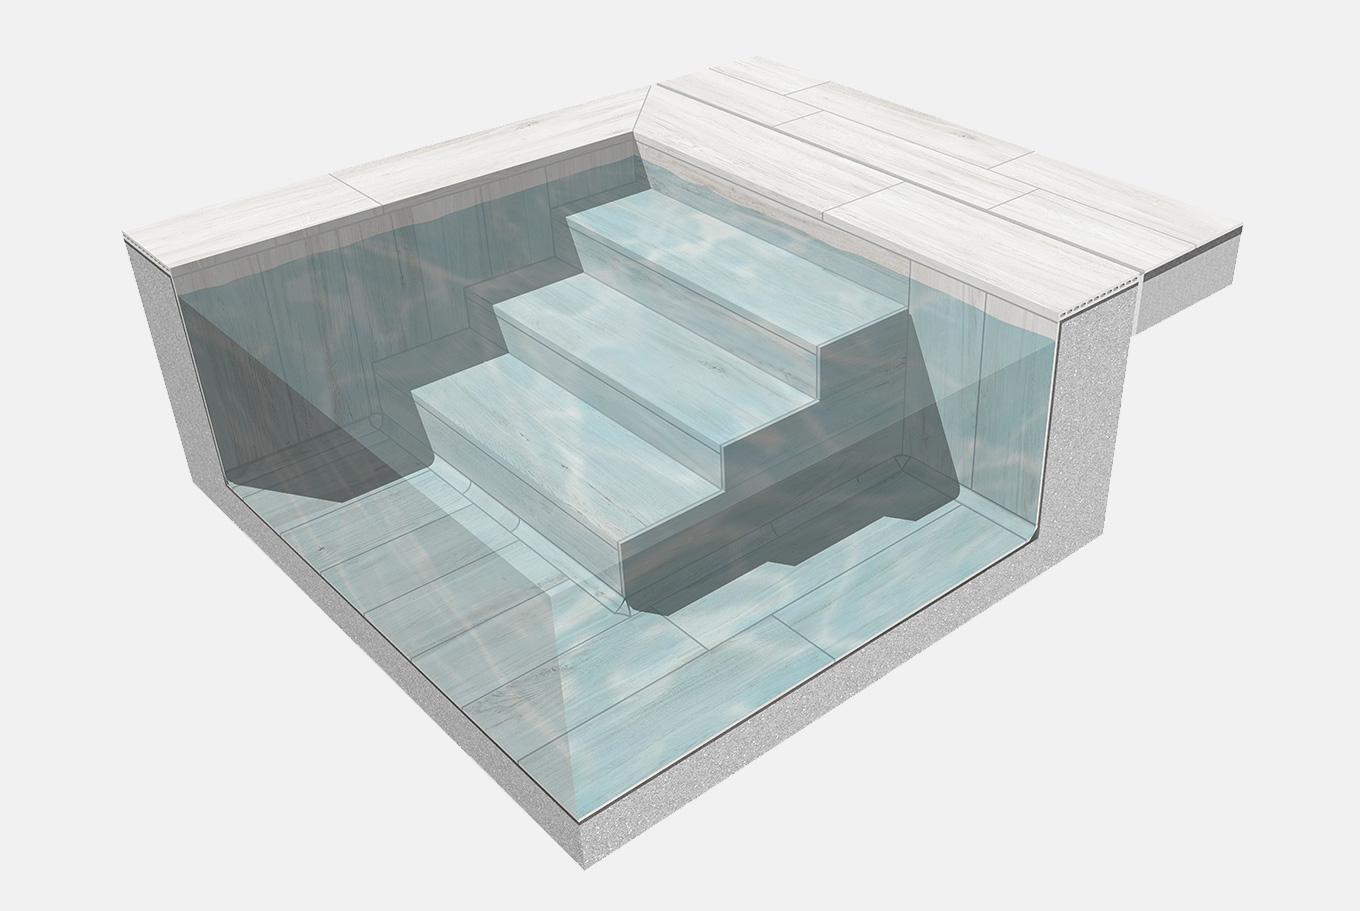 Swimming pool step coping solution